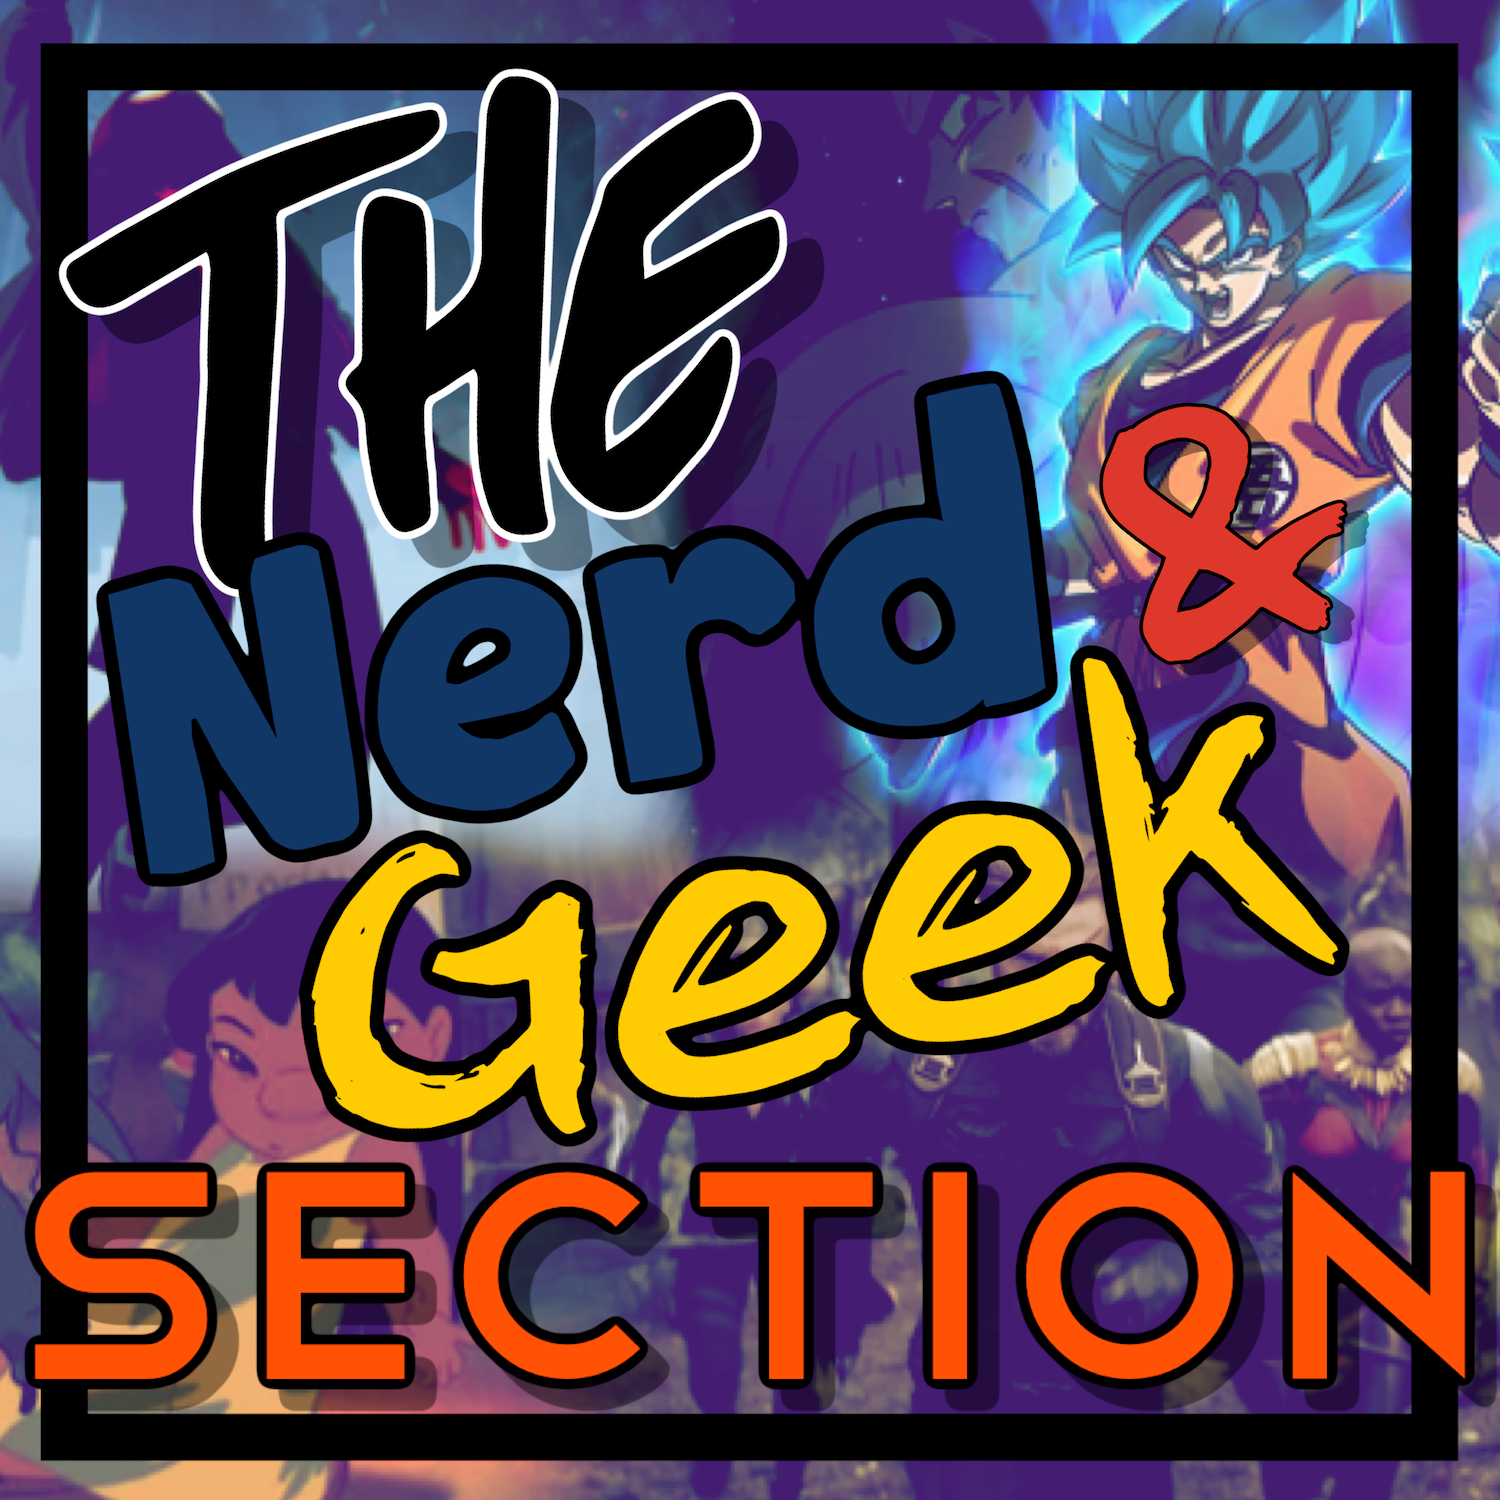 The Nerd & Geek Section! Podcast